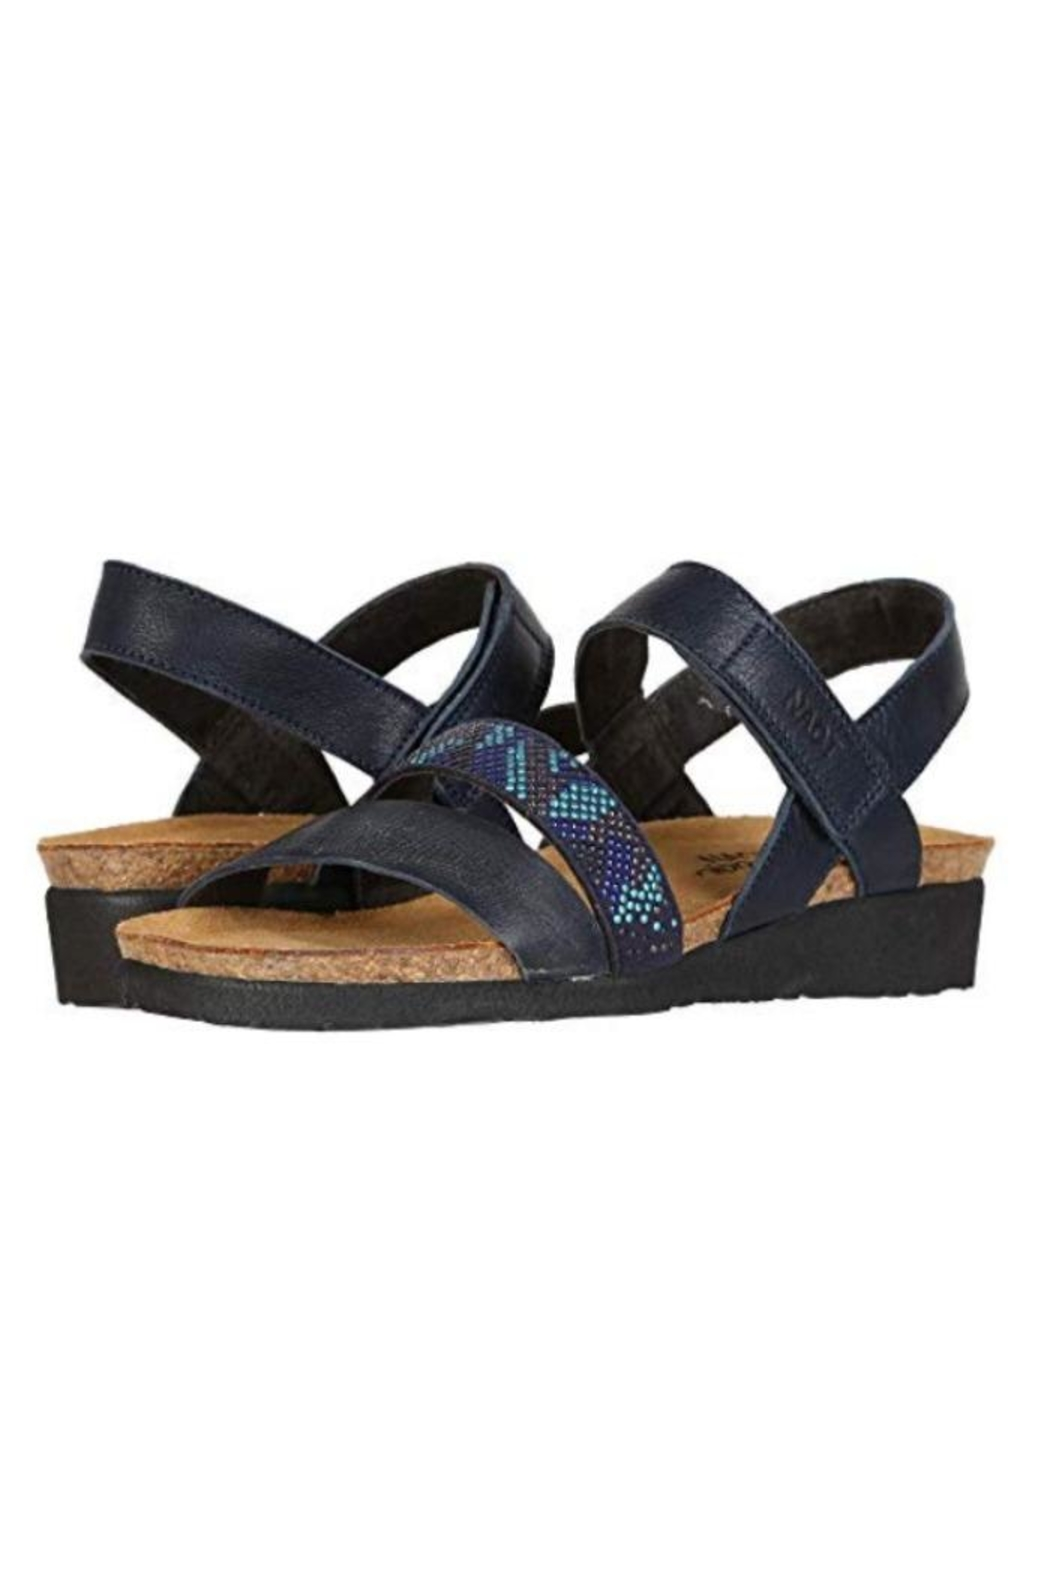 b5e5b0d2177a Naot Gwyneth Sandals from Philadelphia by Hot Foot Boutique — Shoptiques